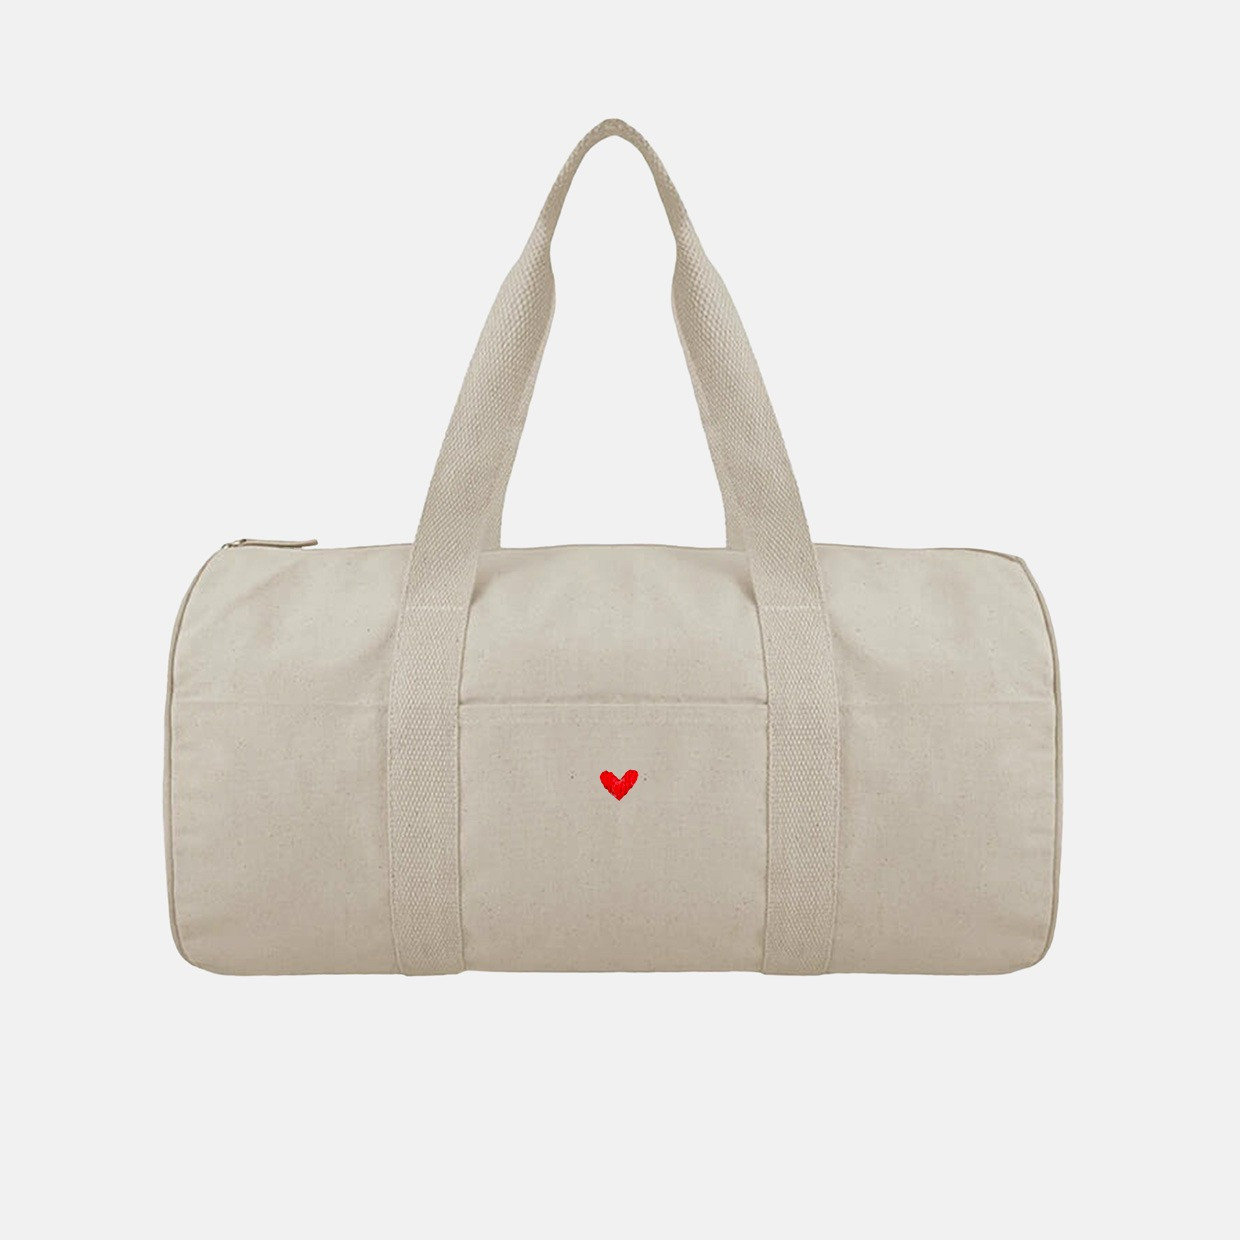 The OFF DUTY bag - CUORICINO